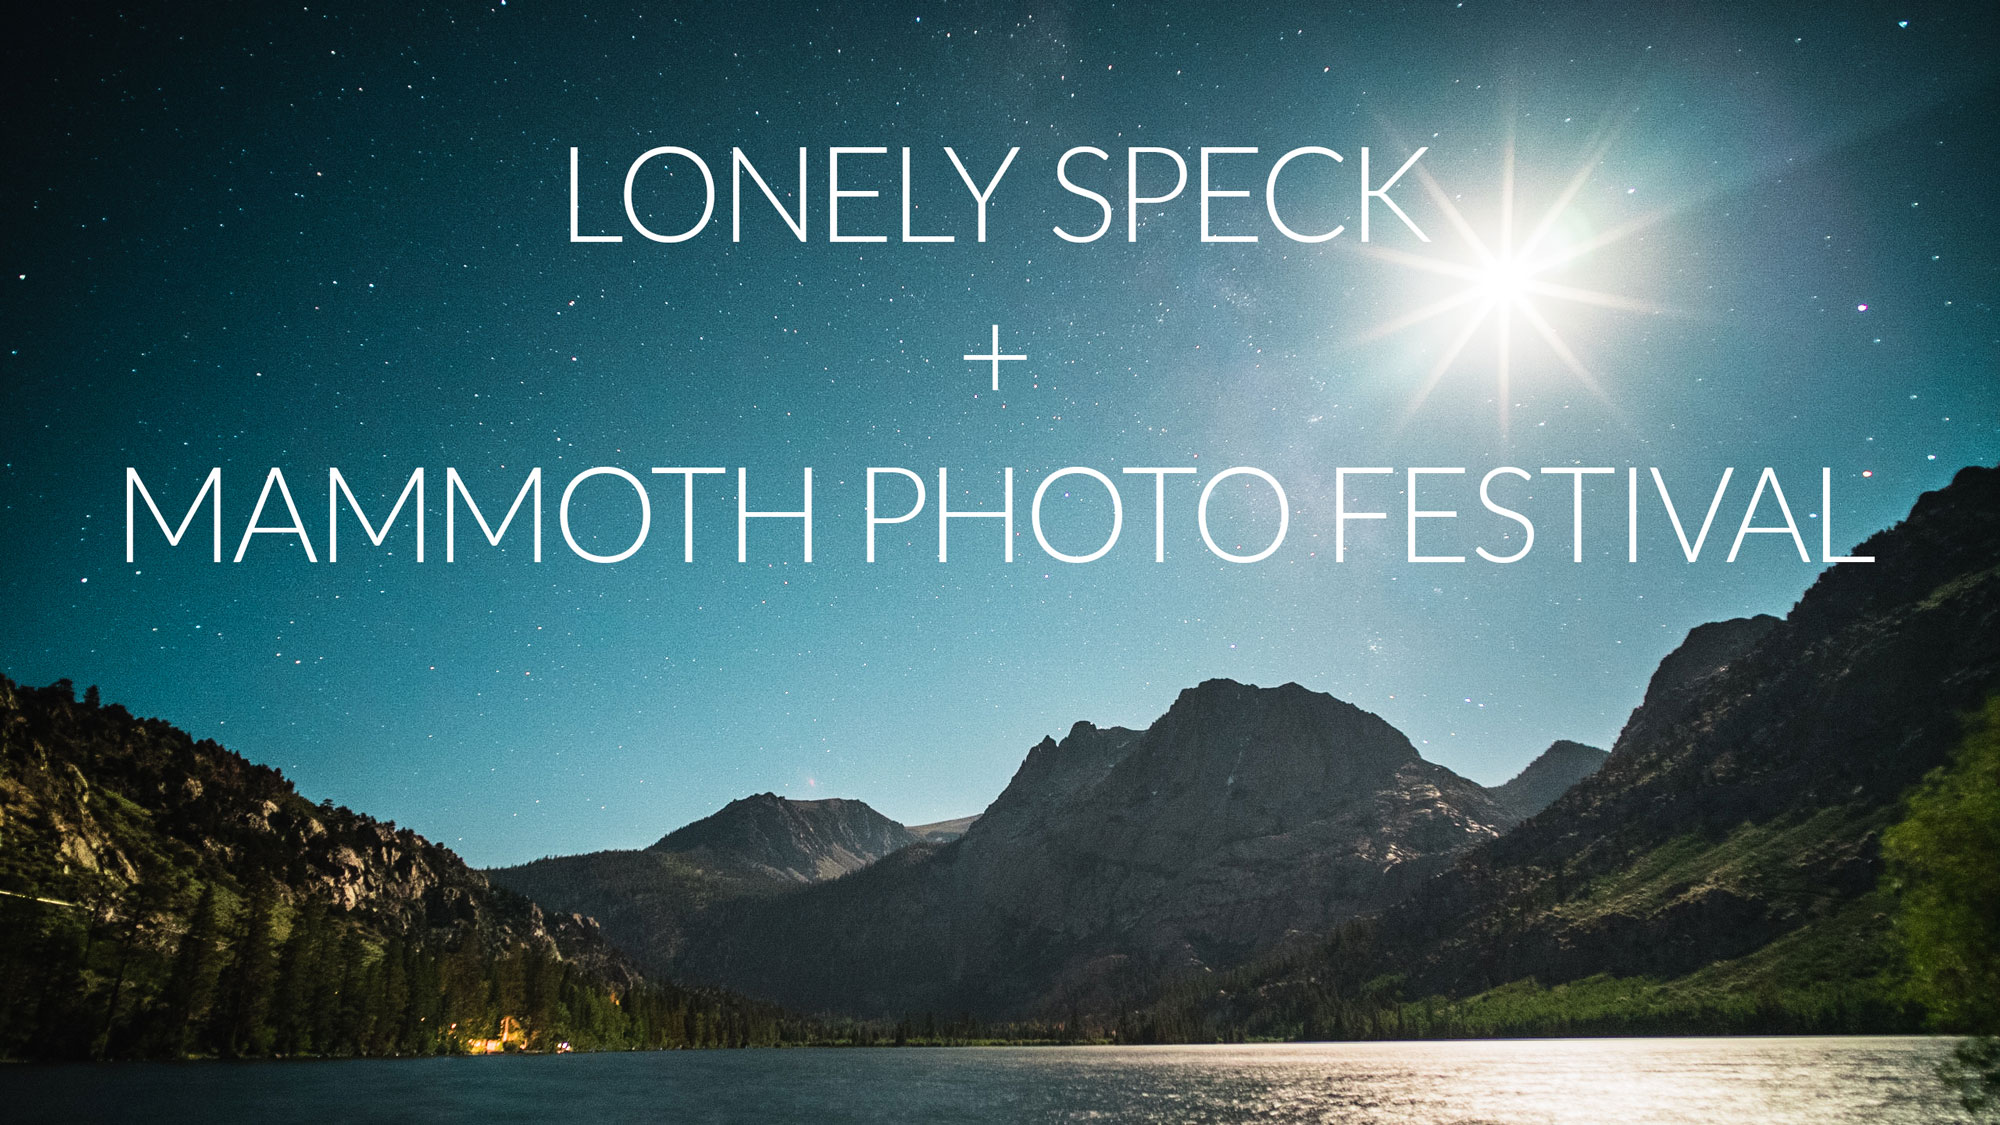 Announcement: Lonely Speck at Mammoth Photo Festival 2019